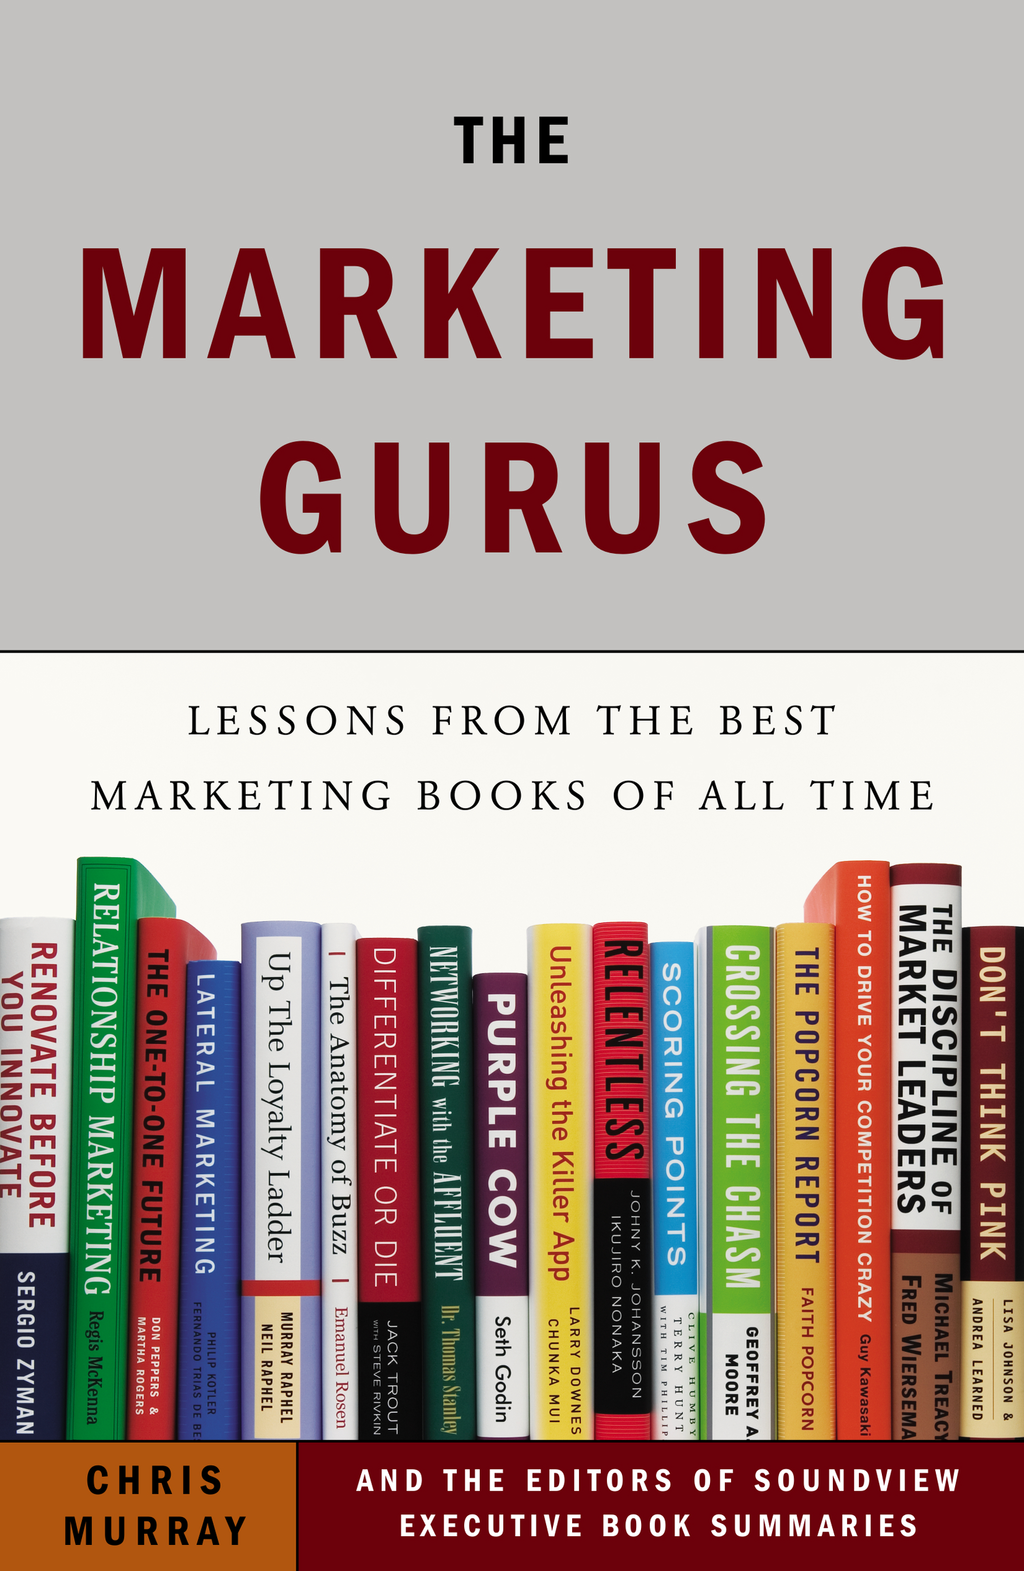 The Marketing Gurus By: Chris Murray,The Editors at Soundview Executive Book